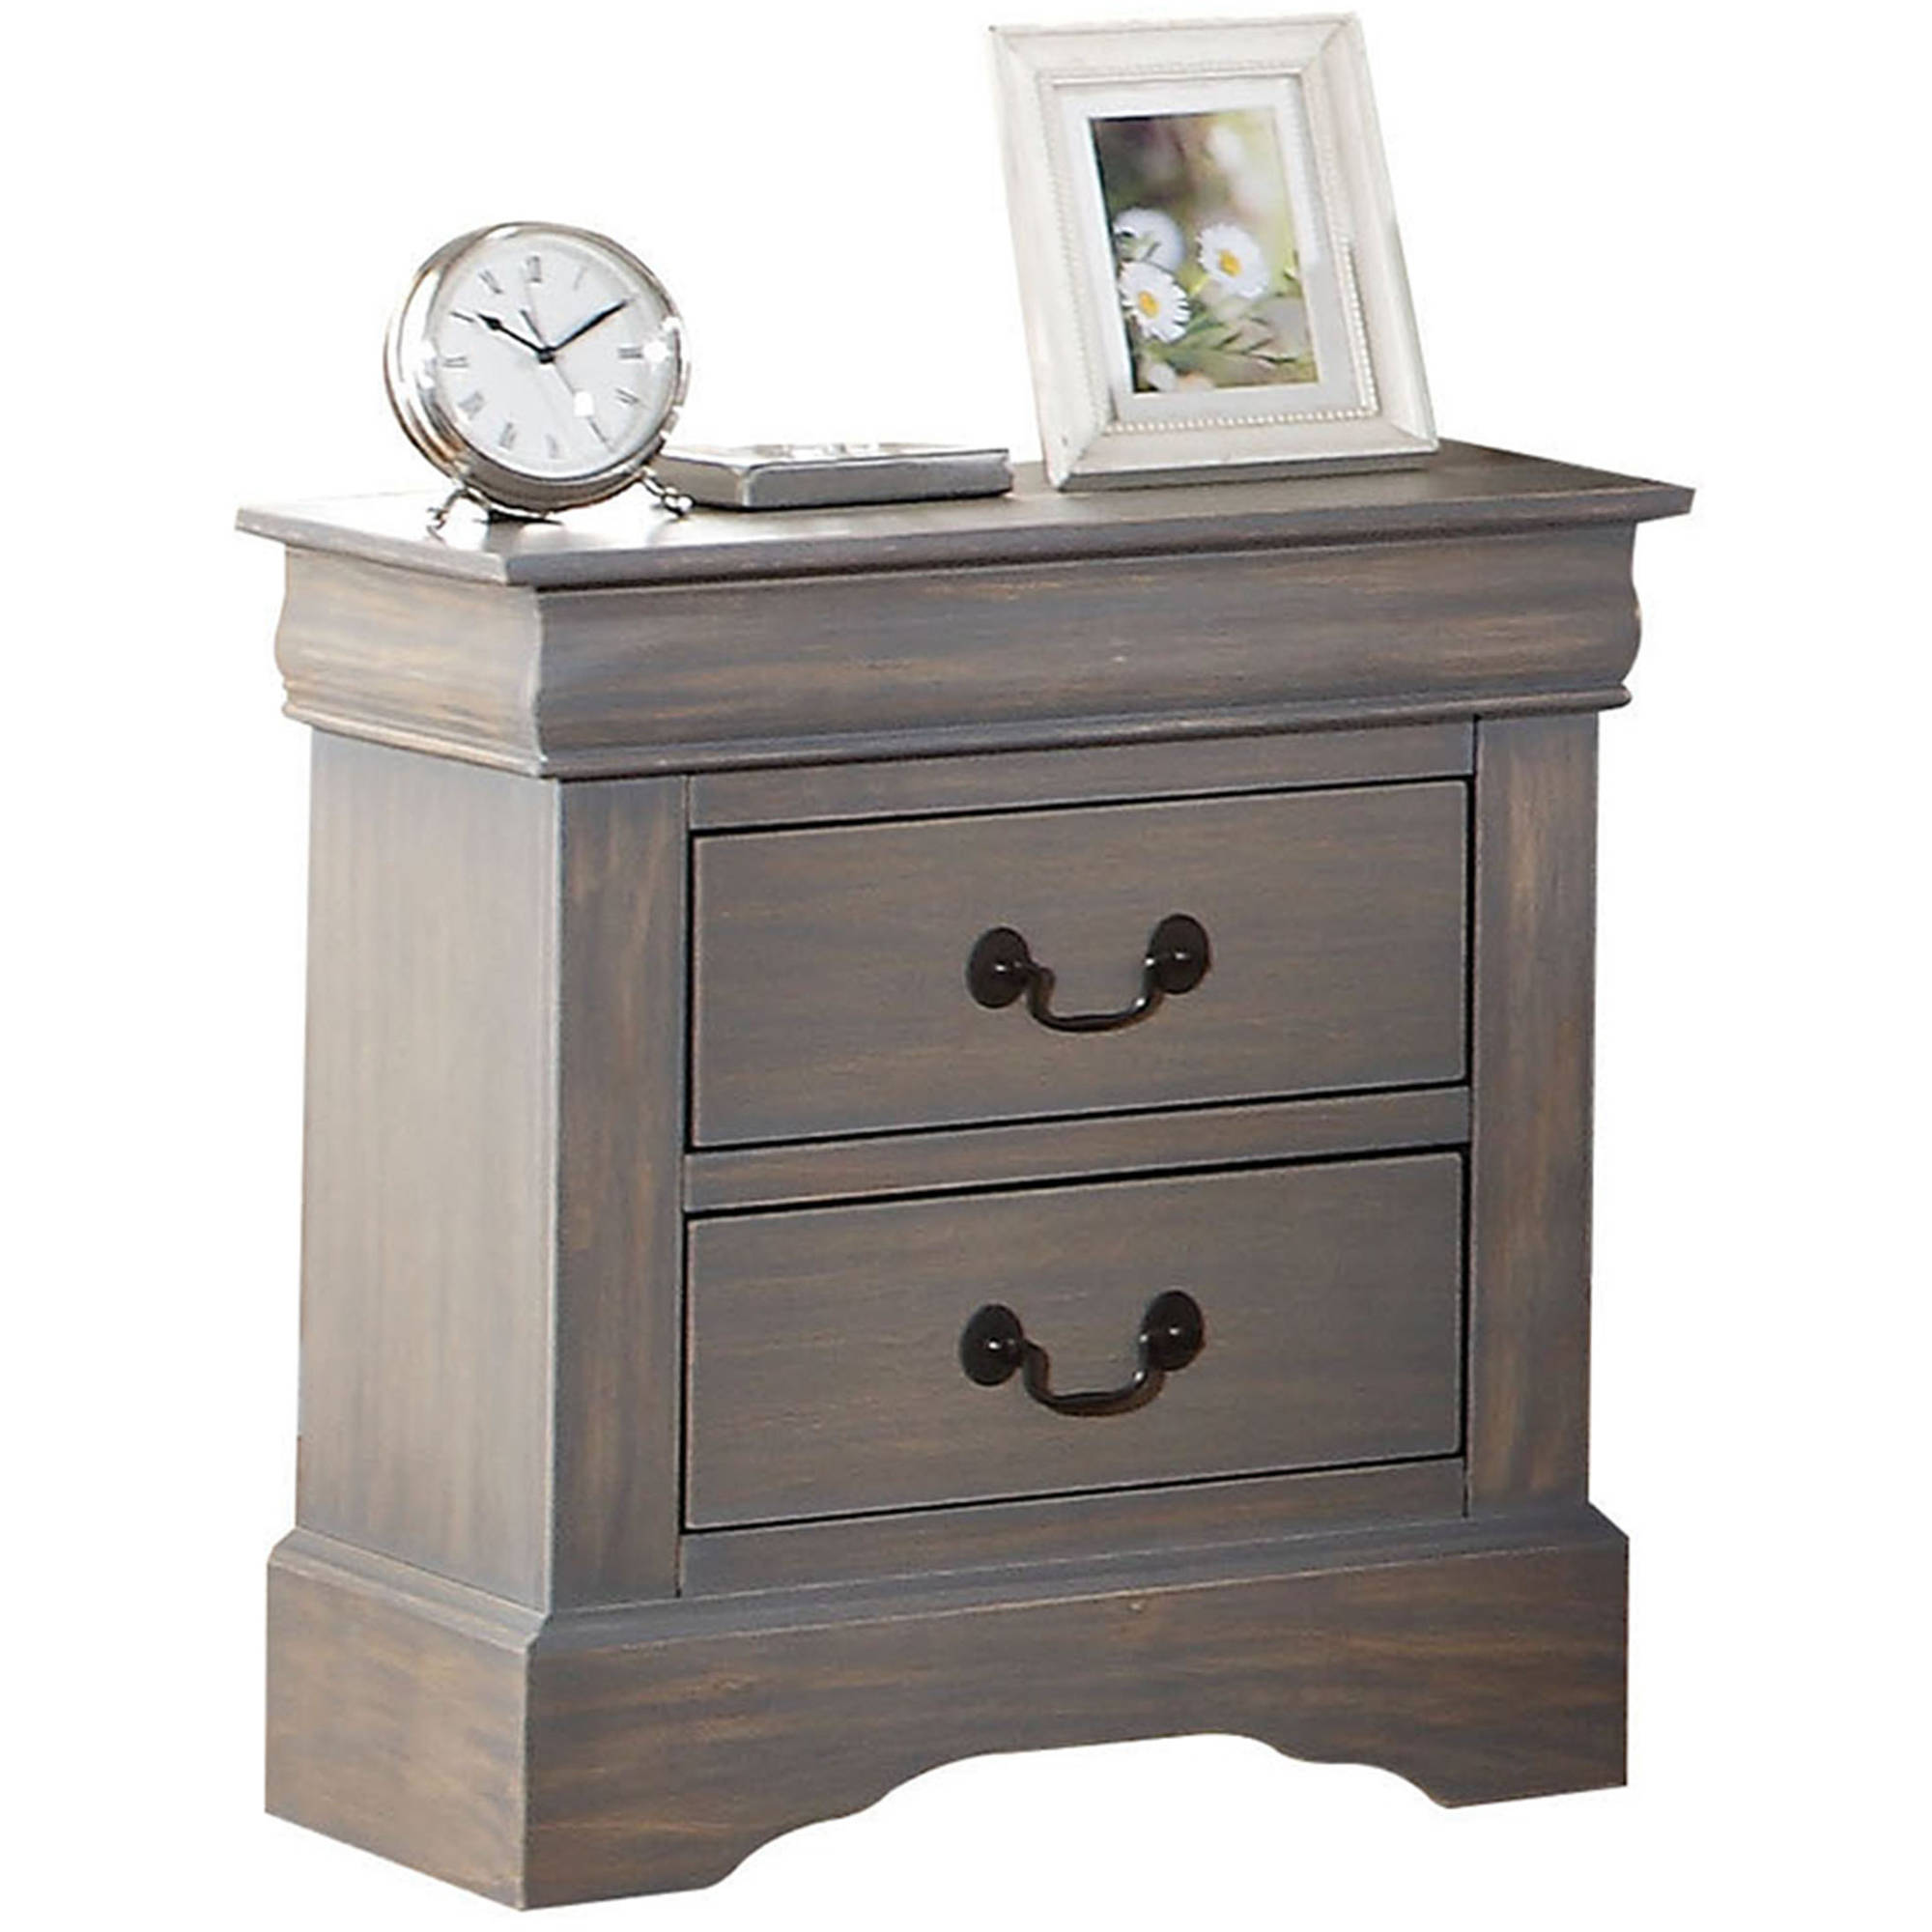 Acme Louis Philippe III Nightstand, Antique Grey by